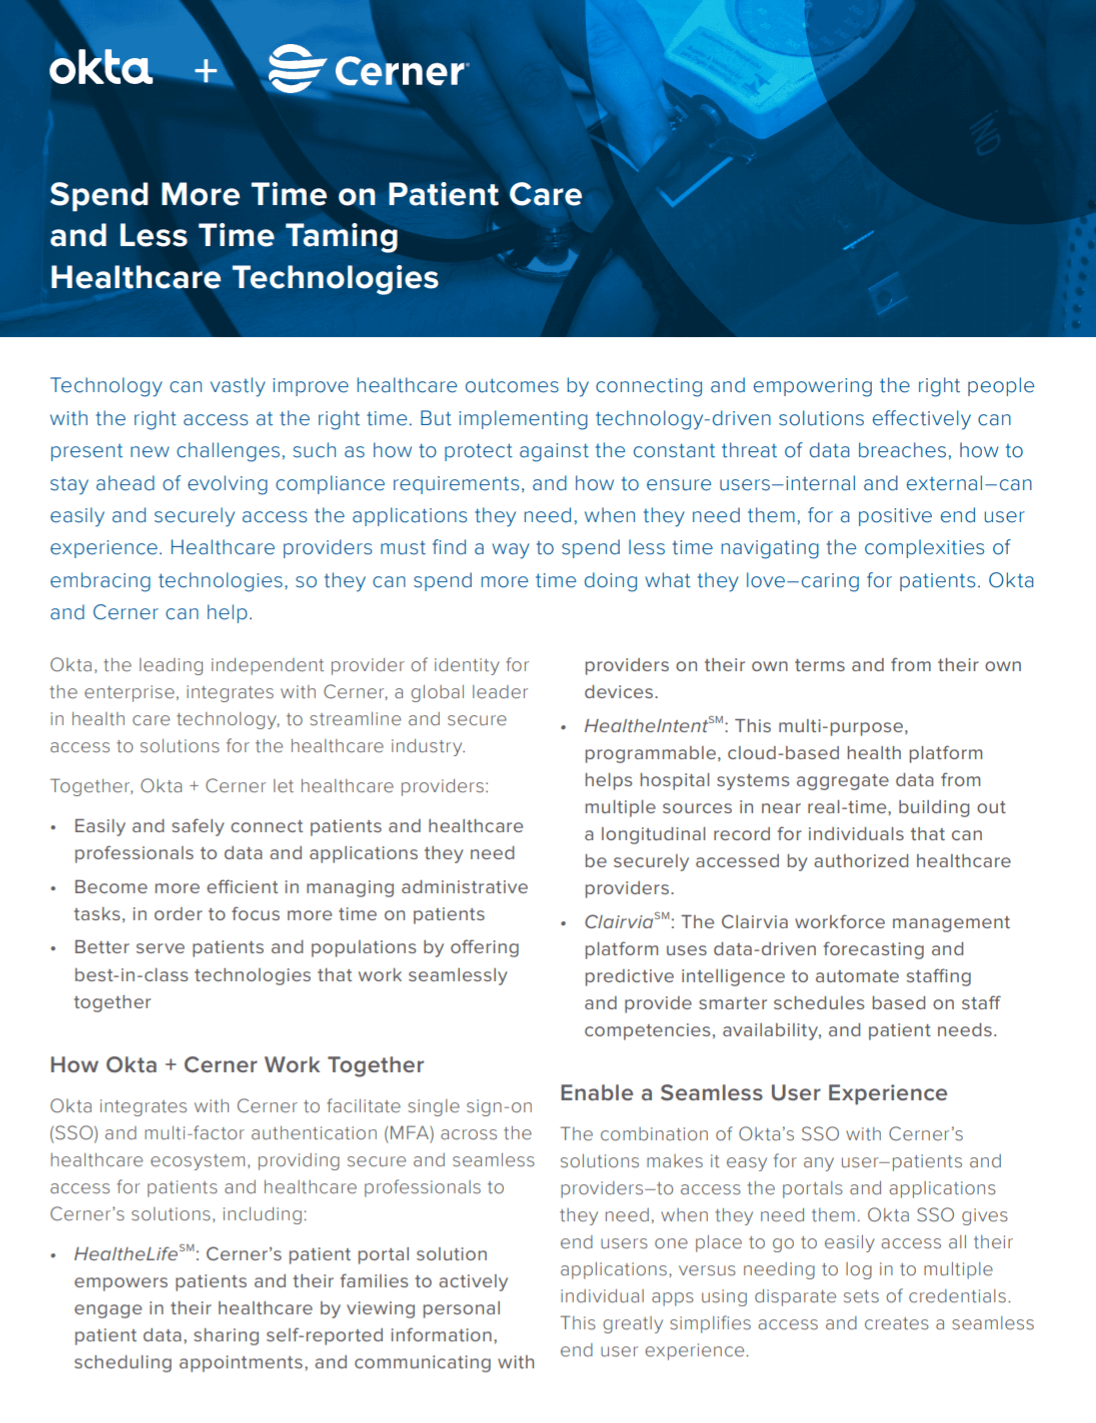 Okta + Cerner: Spend More Time on Patient Care and Less Time Taming Healthcare Technologies